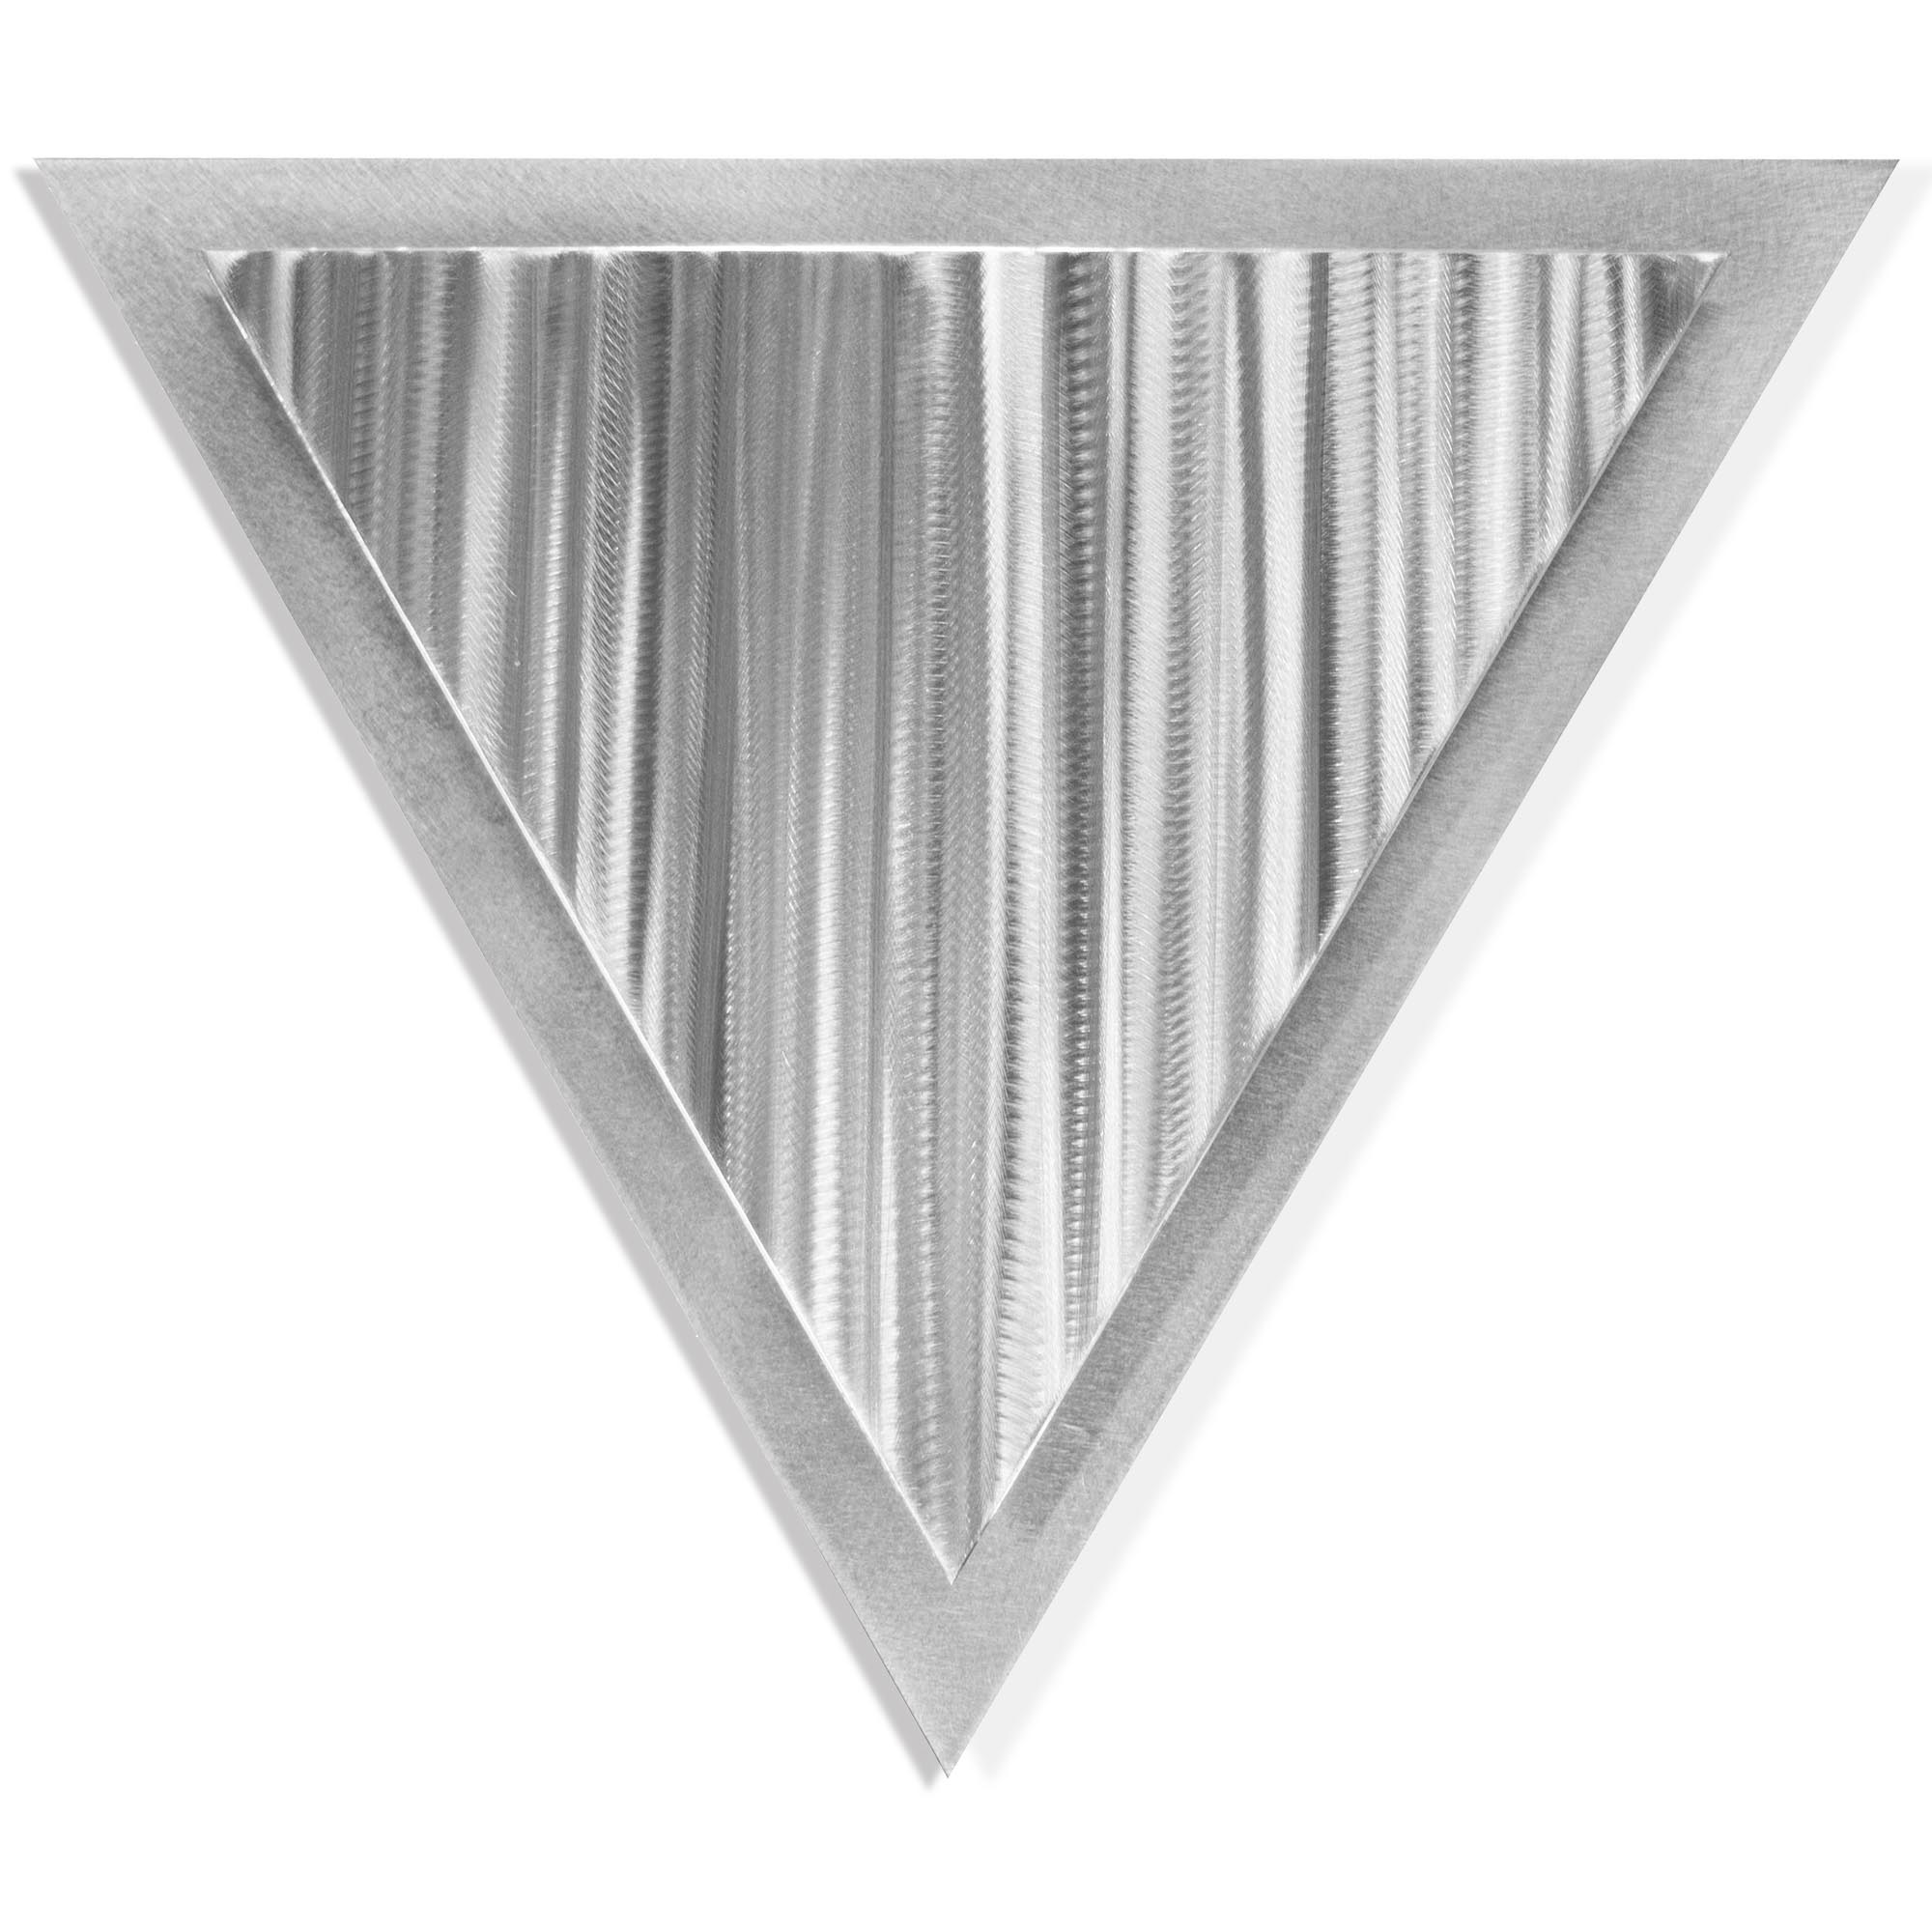 Helena Martin 'Linear Angle' 15in x 13in Modern Metal Art on Ground Metal